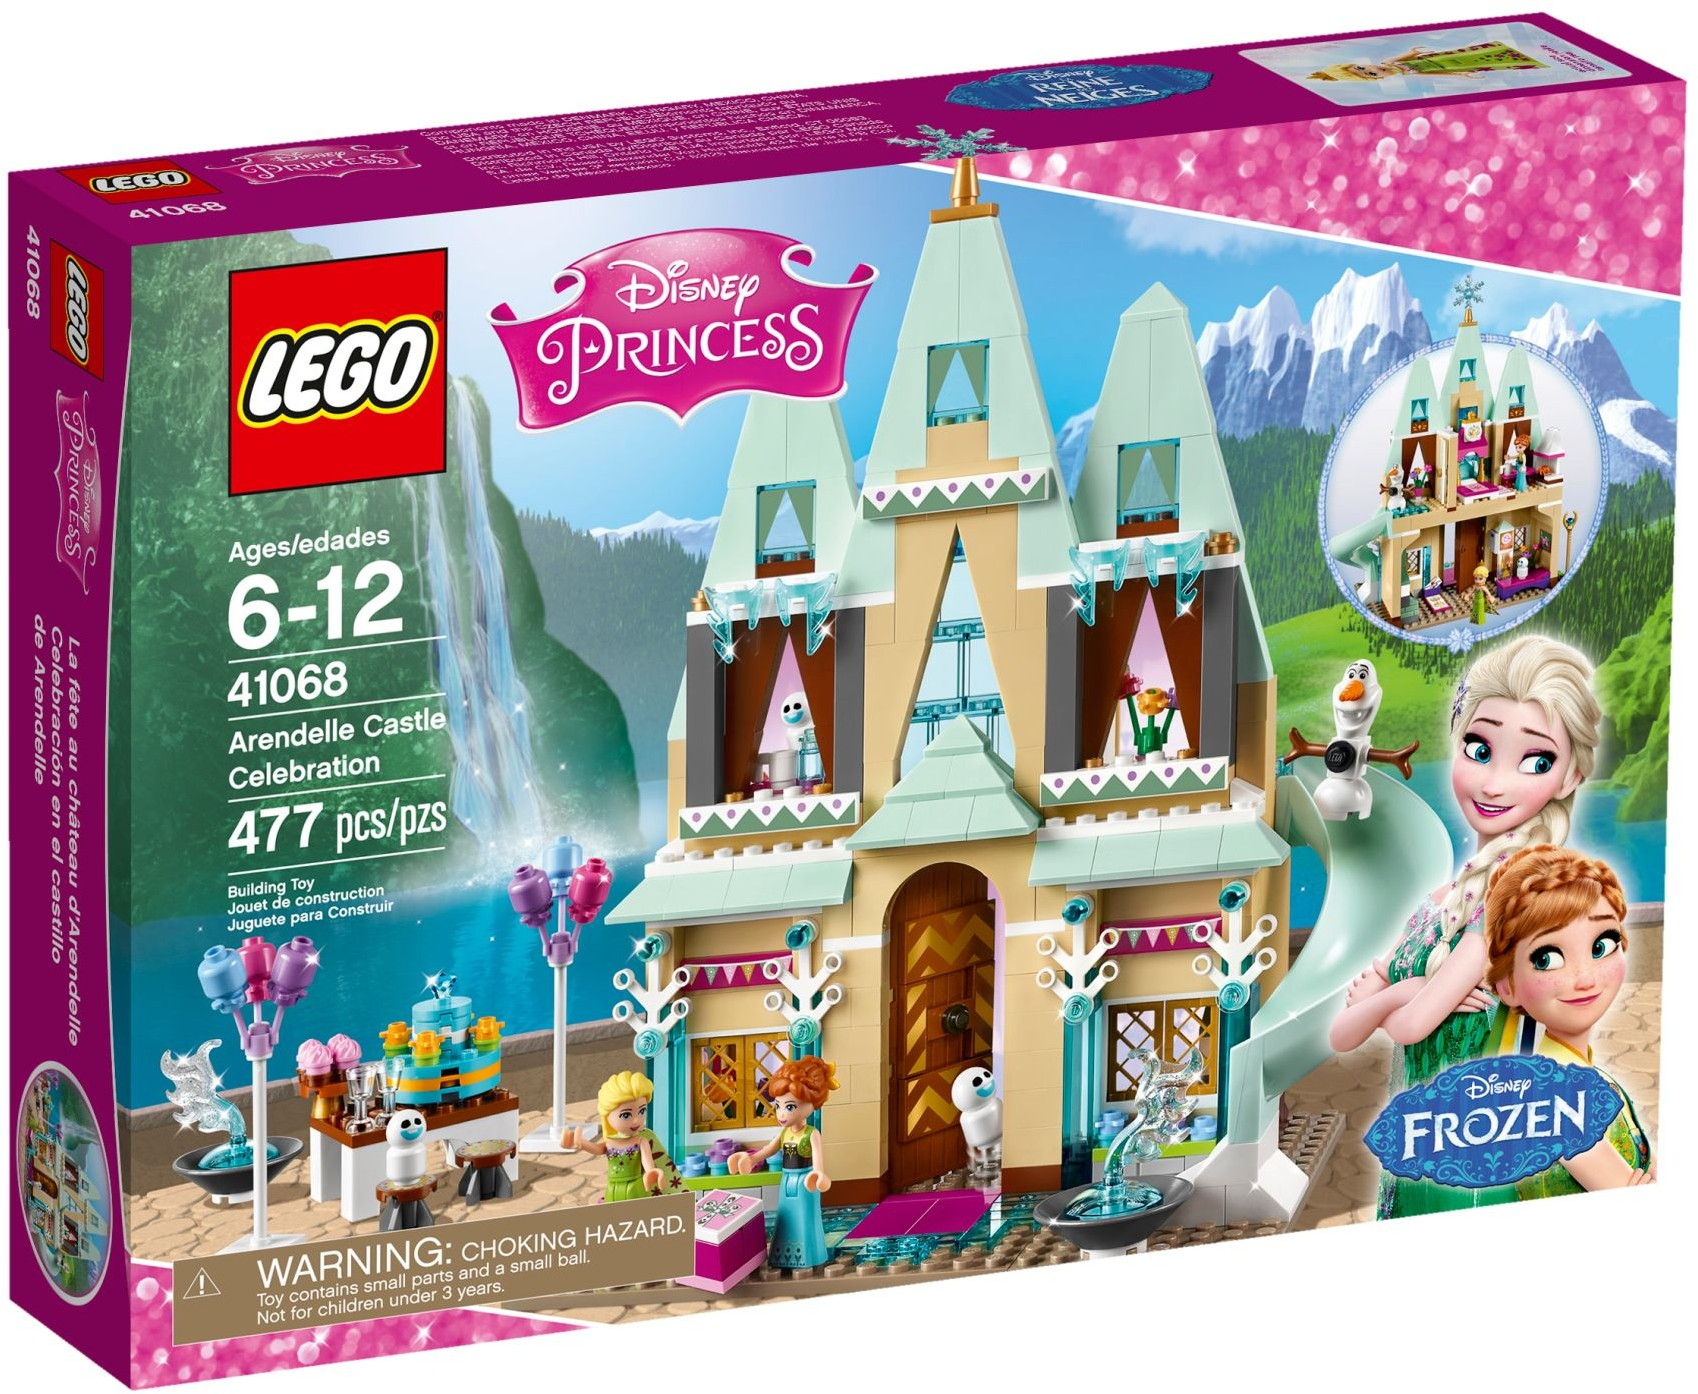 lego disney princess frozen 2015 la reine des neiges est de retour hellobricks blog lego. Black Bedroom Furniture Sets. Home Design Ideas